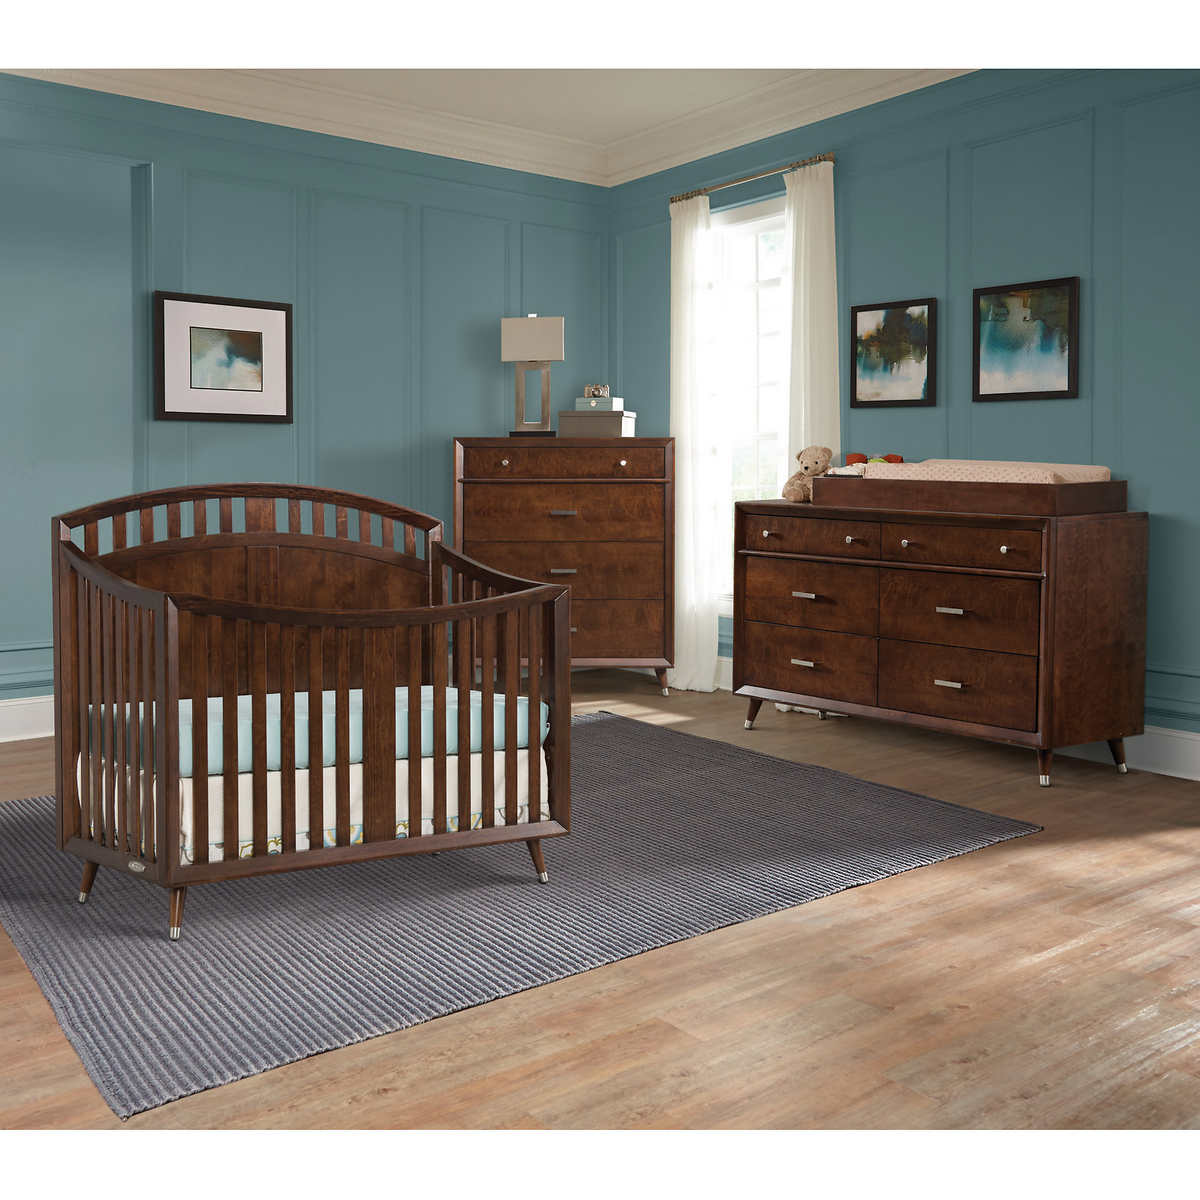 White plastic toddler bed costco - Tremont Arch Top Crib 3 Piece Nursery Collection Brown